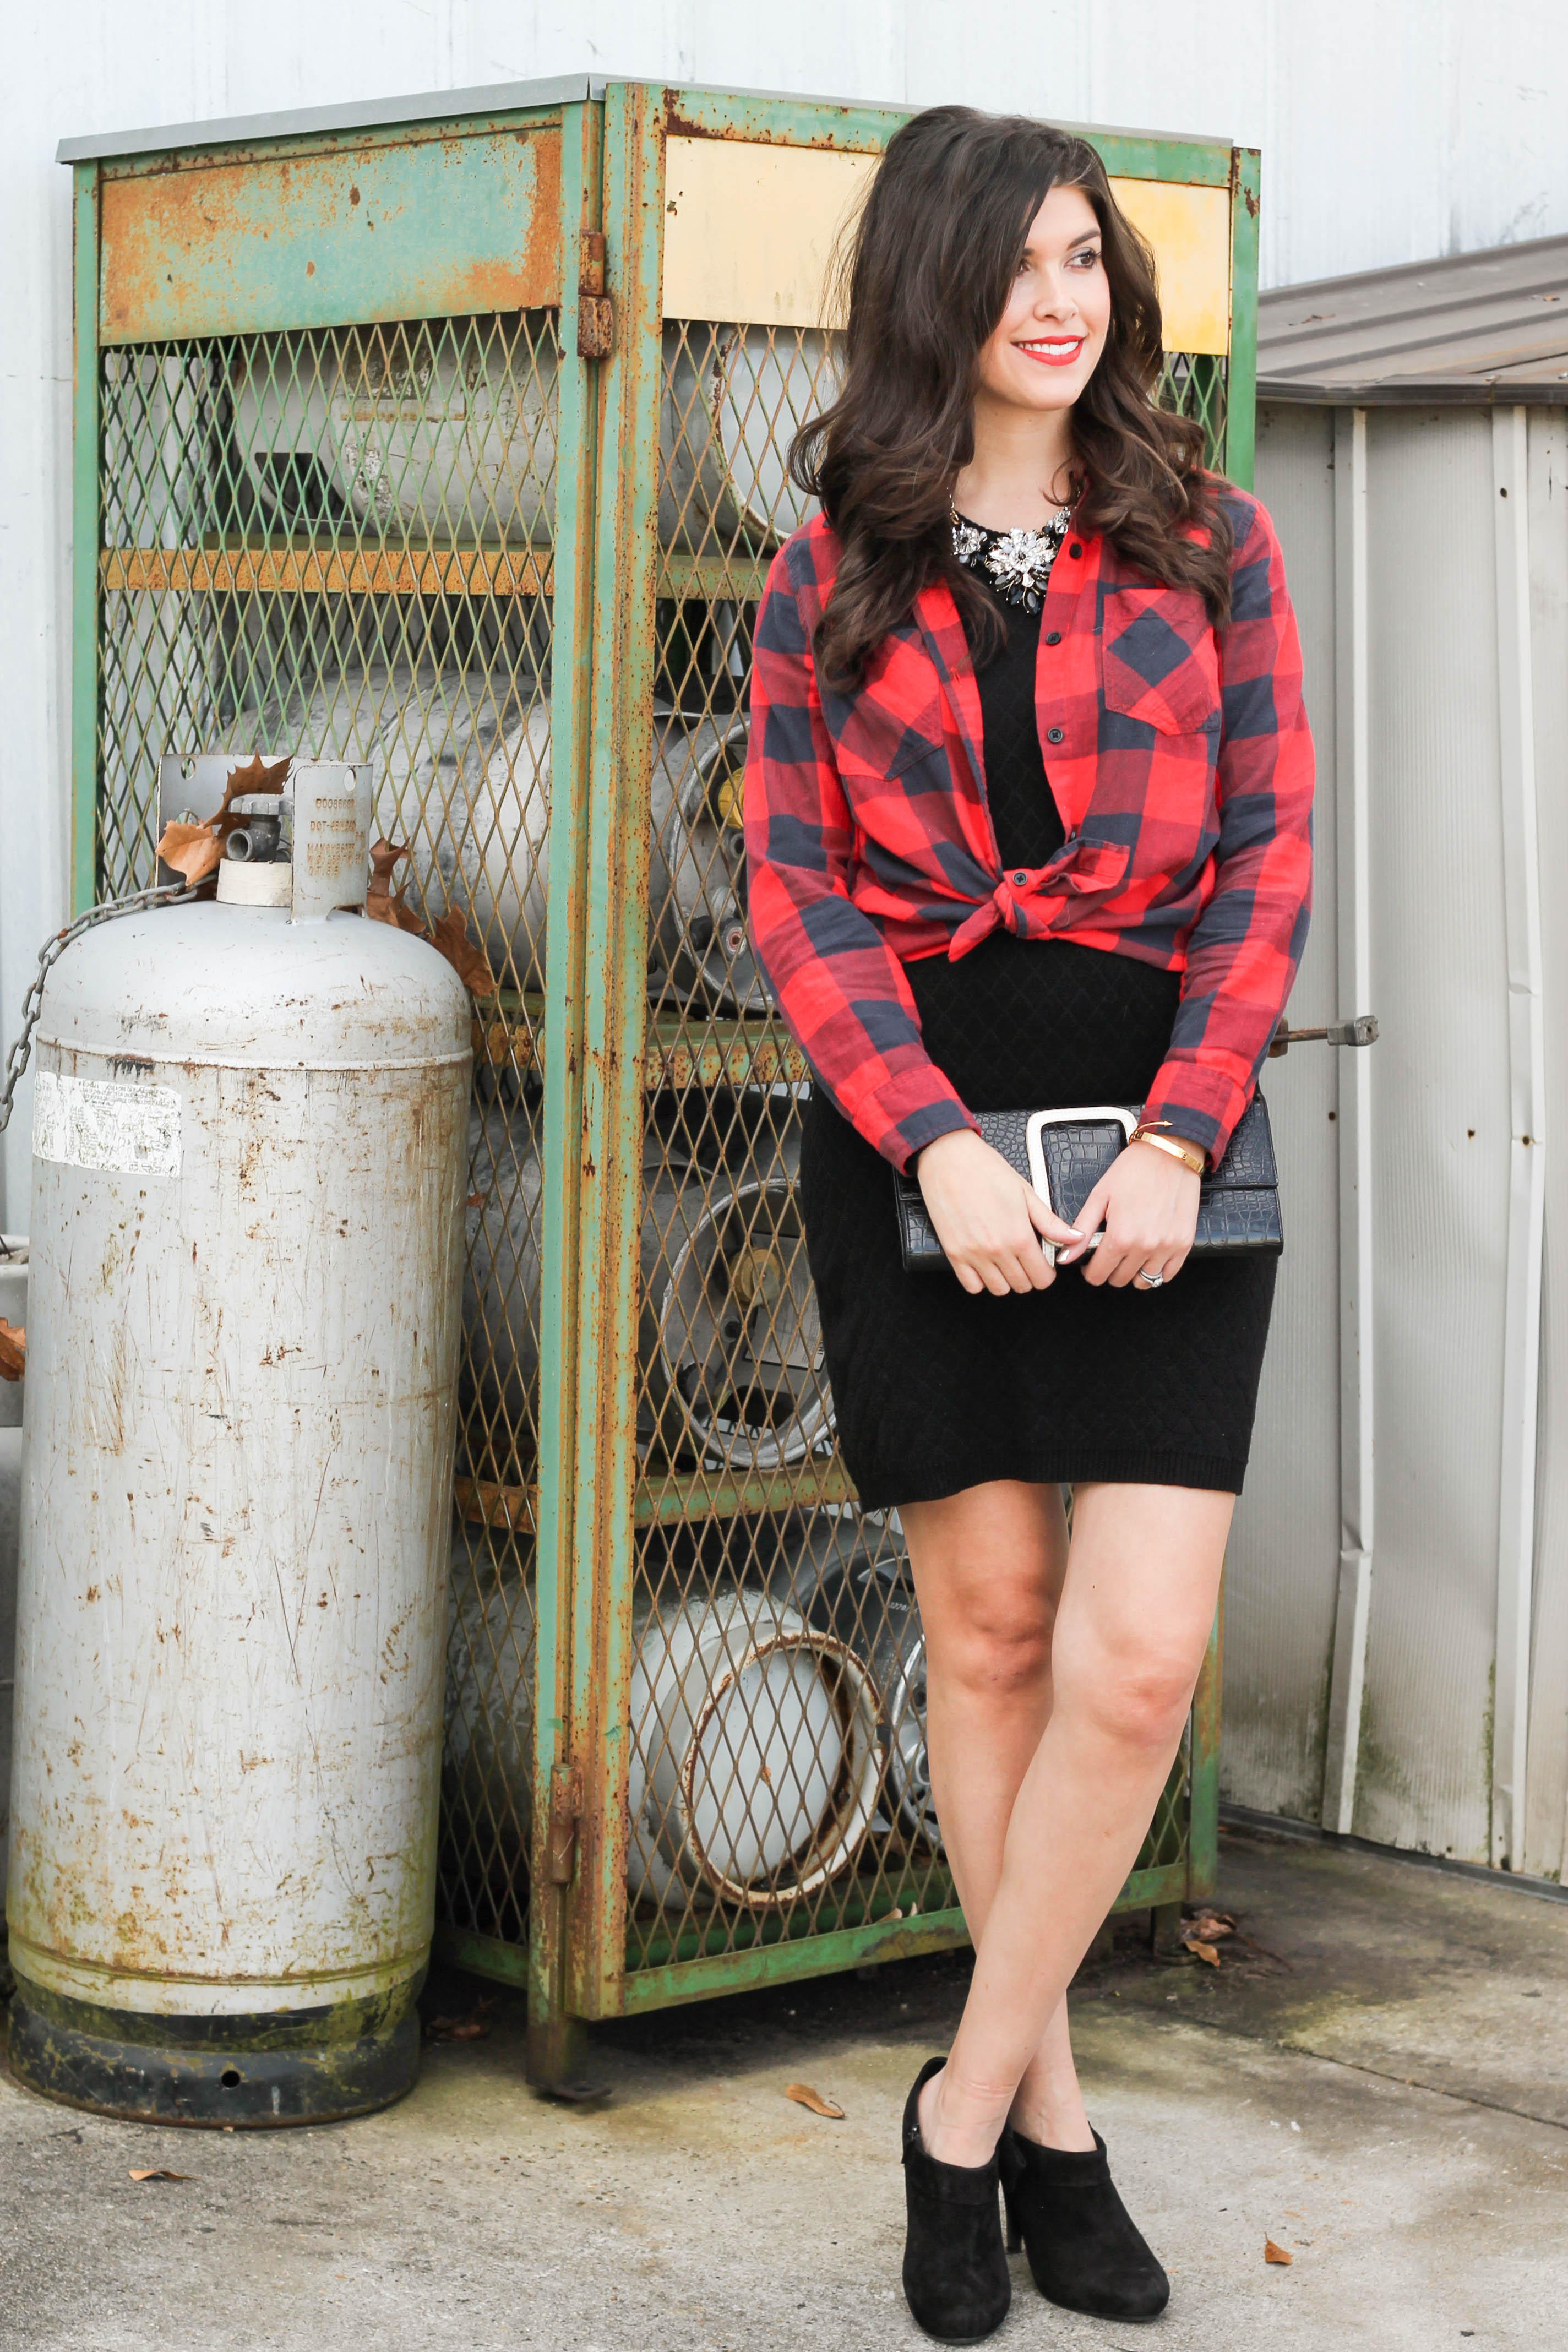 2015-12-06 13.29.32 - Holiday Glam + Buffalo Red Plaid Shirt by New York fashion blogger